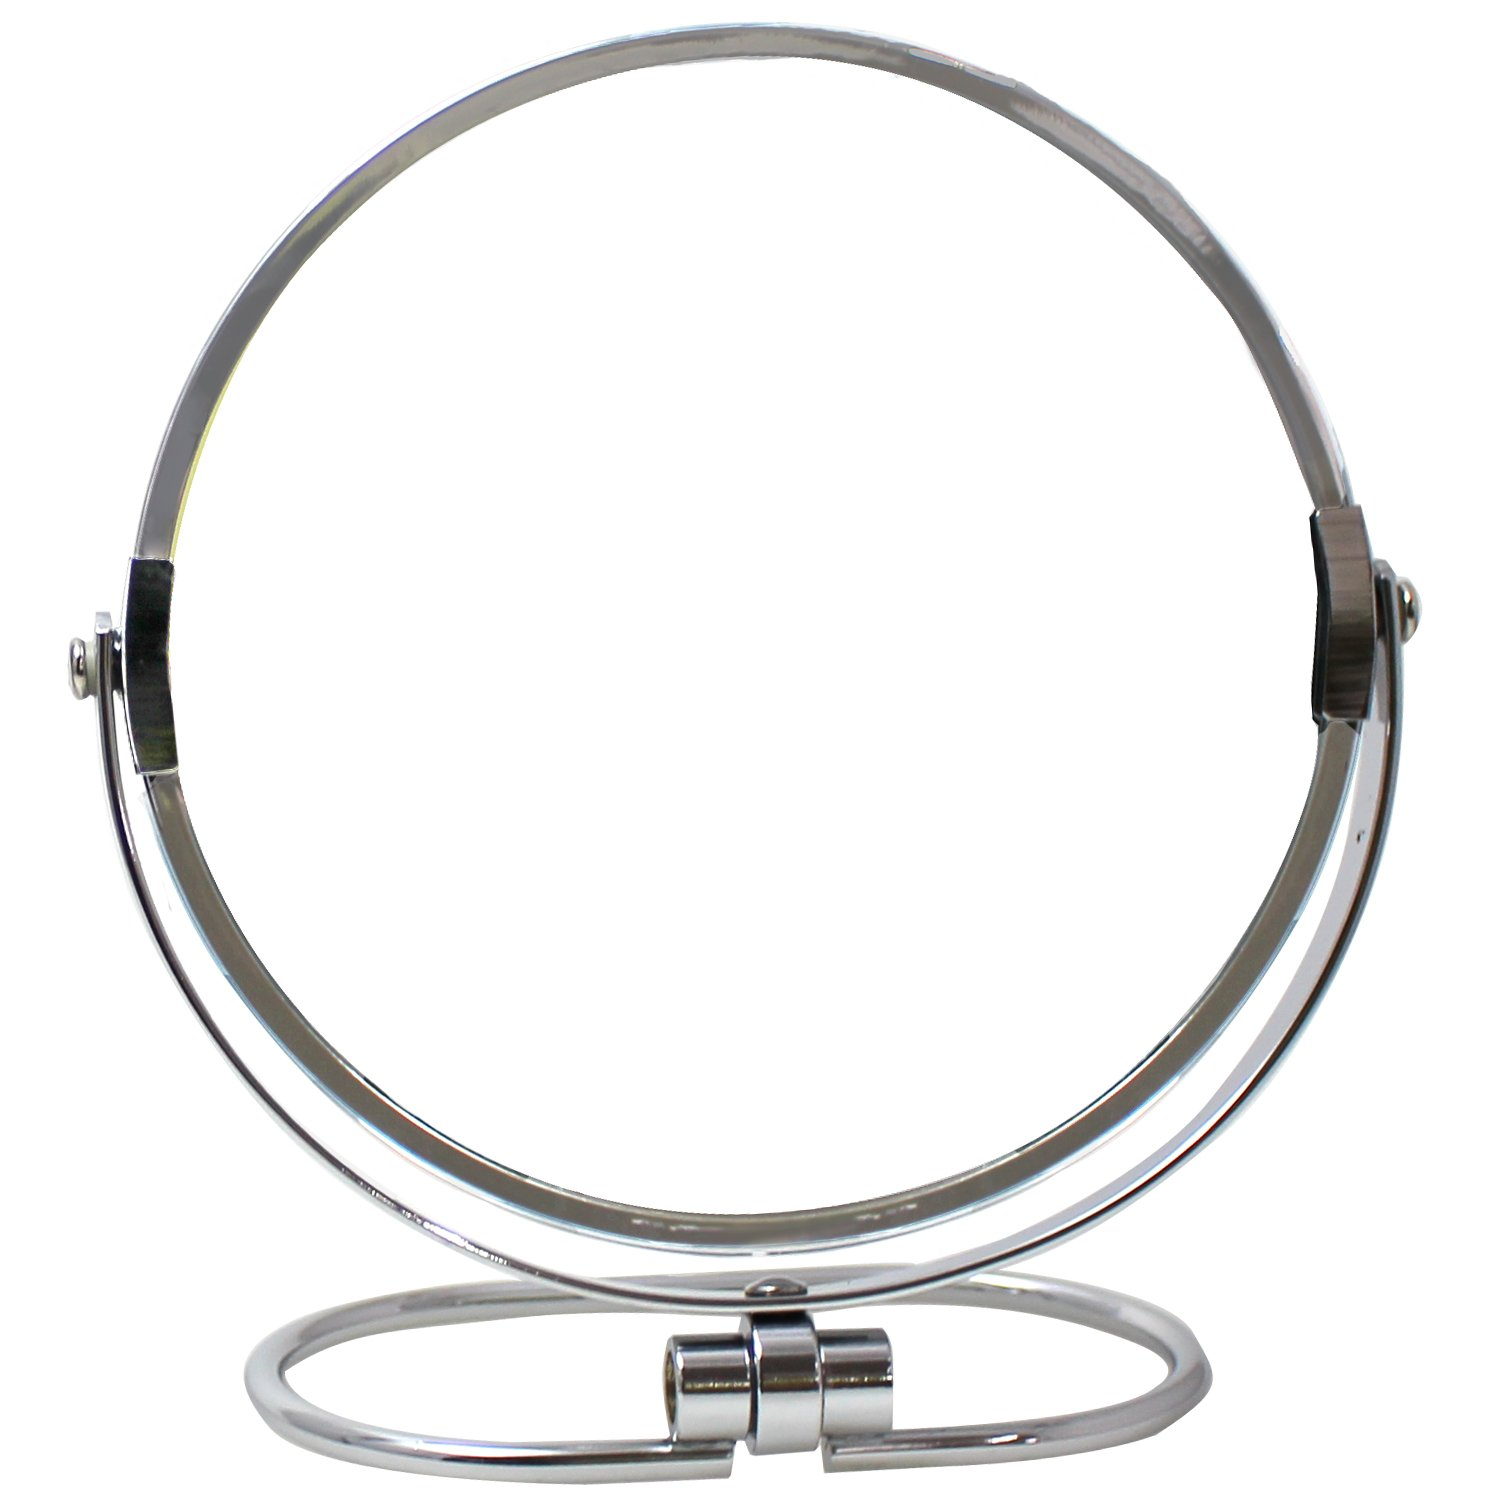 Stainless Steel Double-sided 360 Swivel Vanity Makeup Bathroom Mirror with 3x Magnification on Foldable Oval Base Stand - 7 inch, Chrome Colour